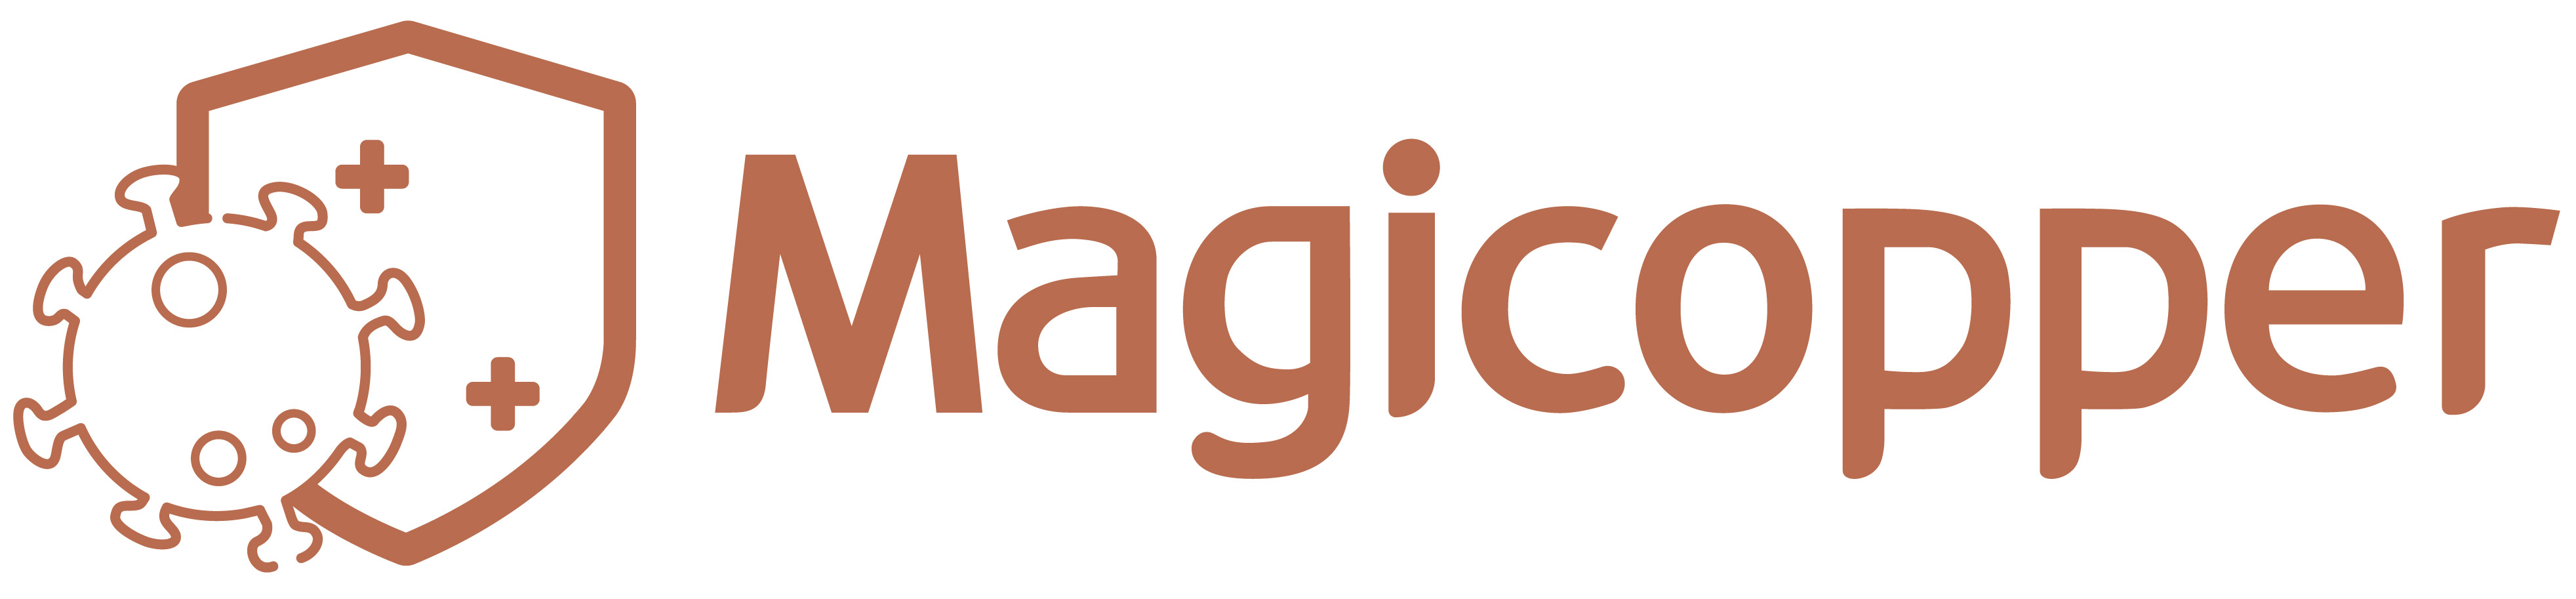 Magicopper Antimicrobial nano-copper logo